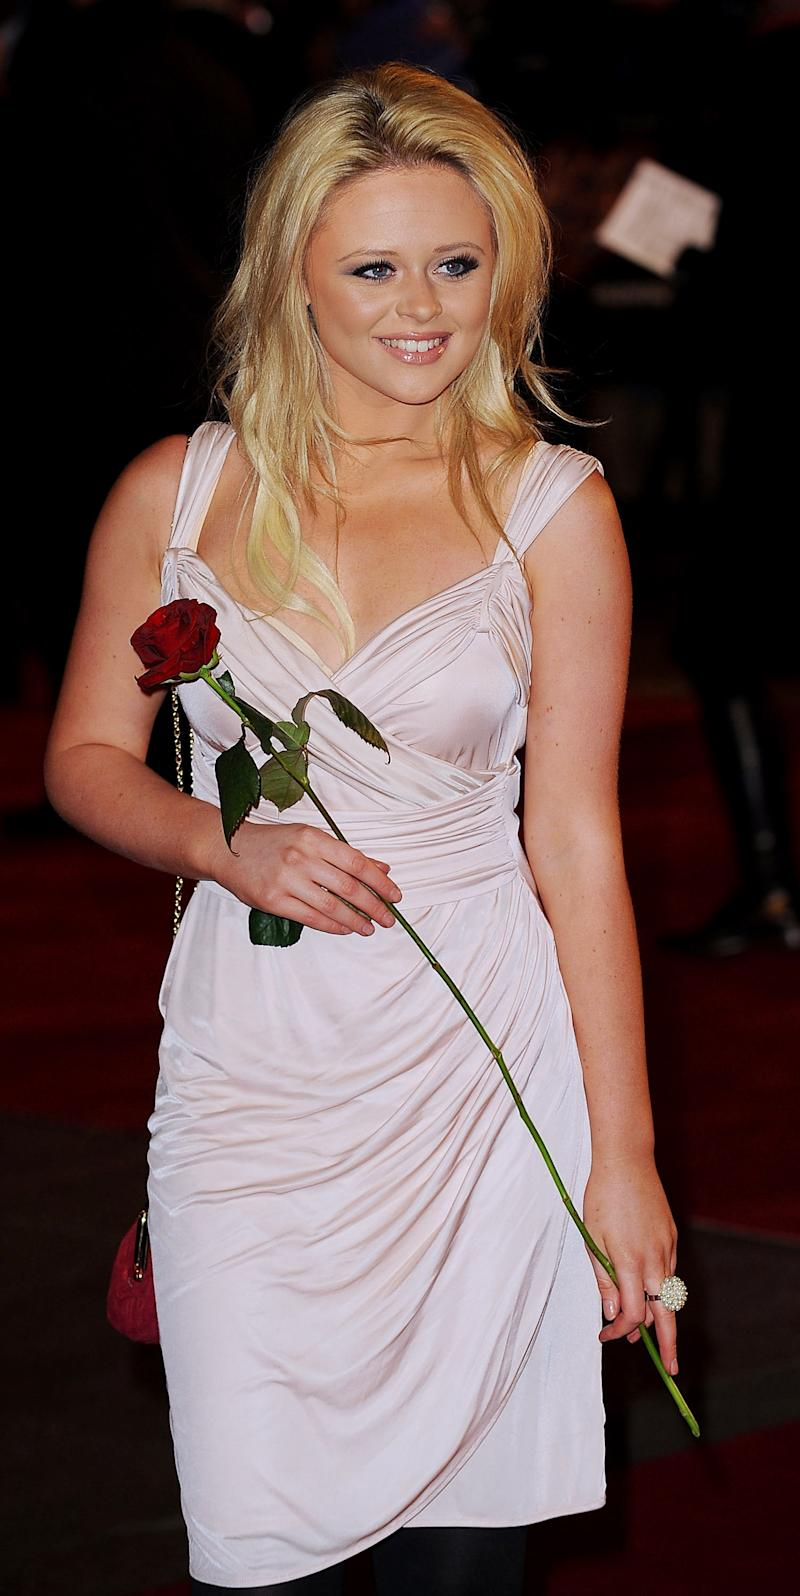 Emily Atack attends the UK Premiere of 'Valentine's Day' at Odeon Leicester Square on February 11, 2010 in London, England. (Photo by Ferdaus Shamim/WireImage)